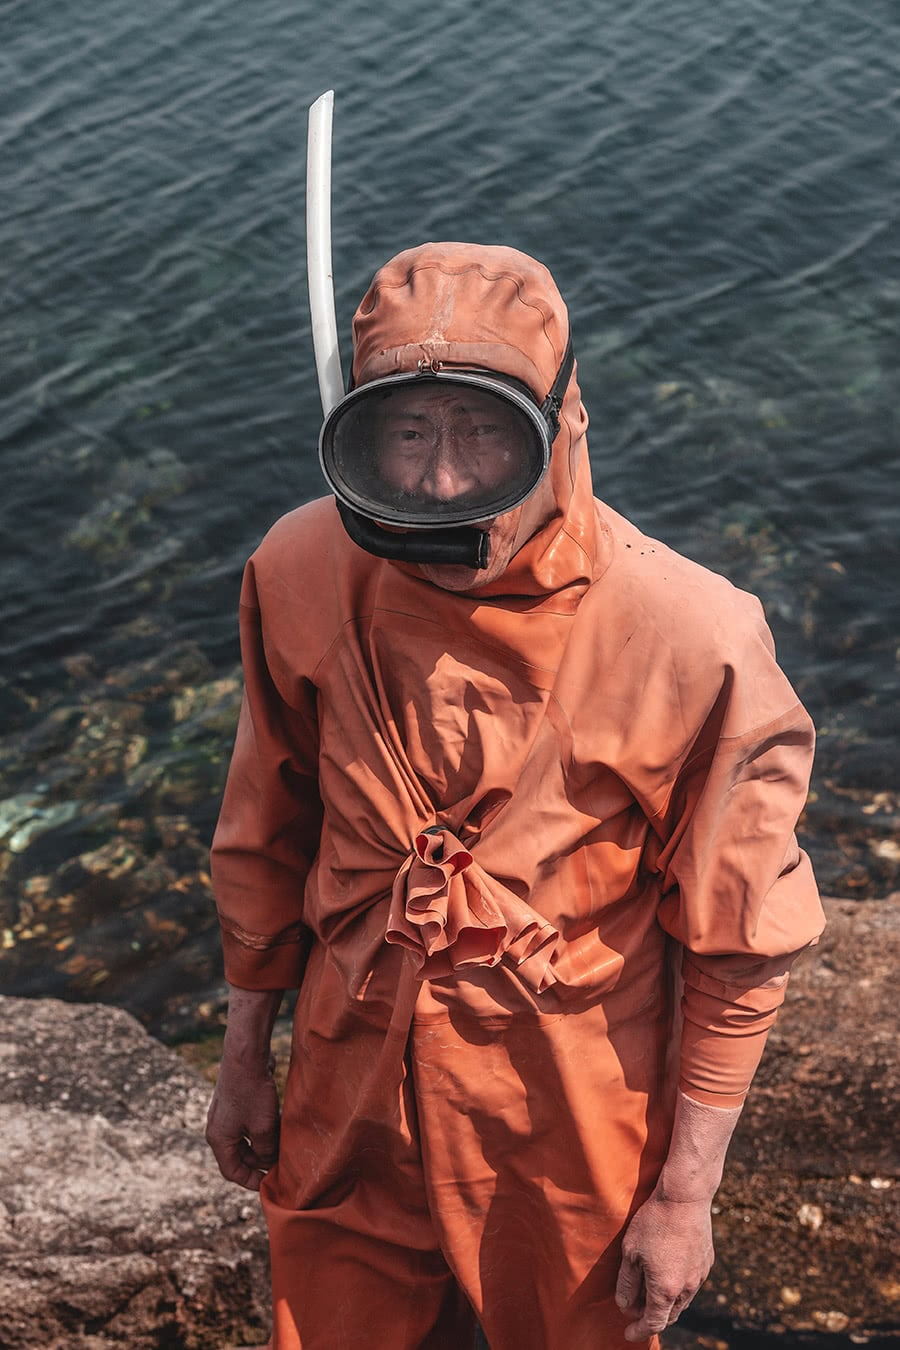 A clam farmer wearing snorkeling gear in Wonsan, North Korea.